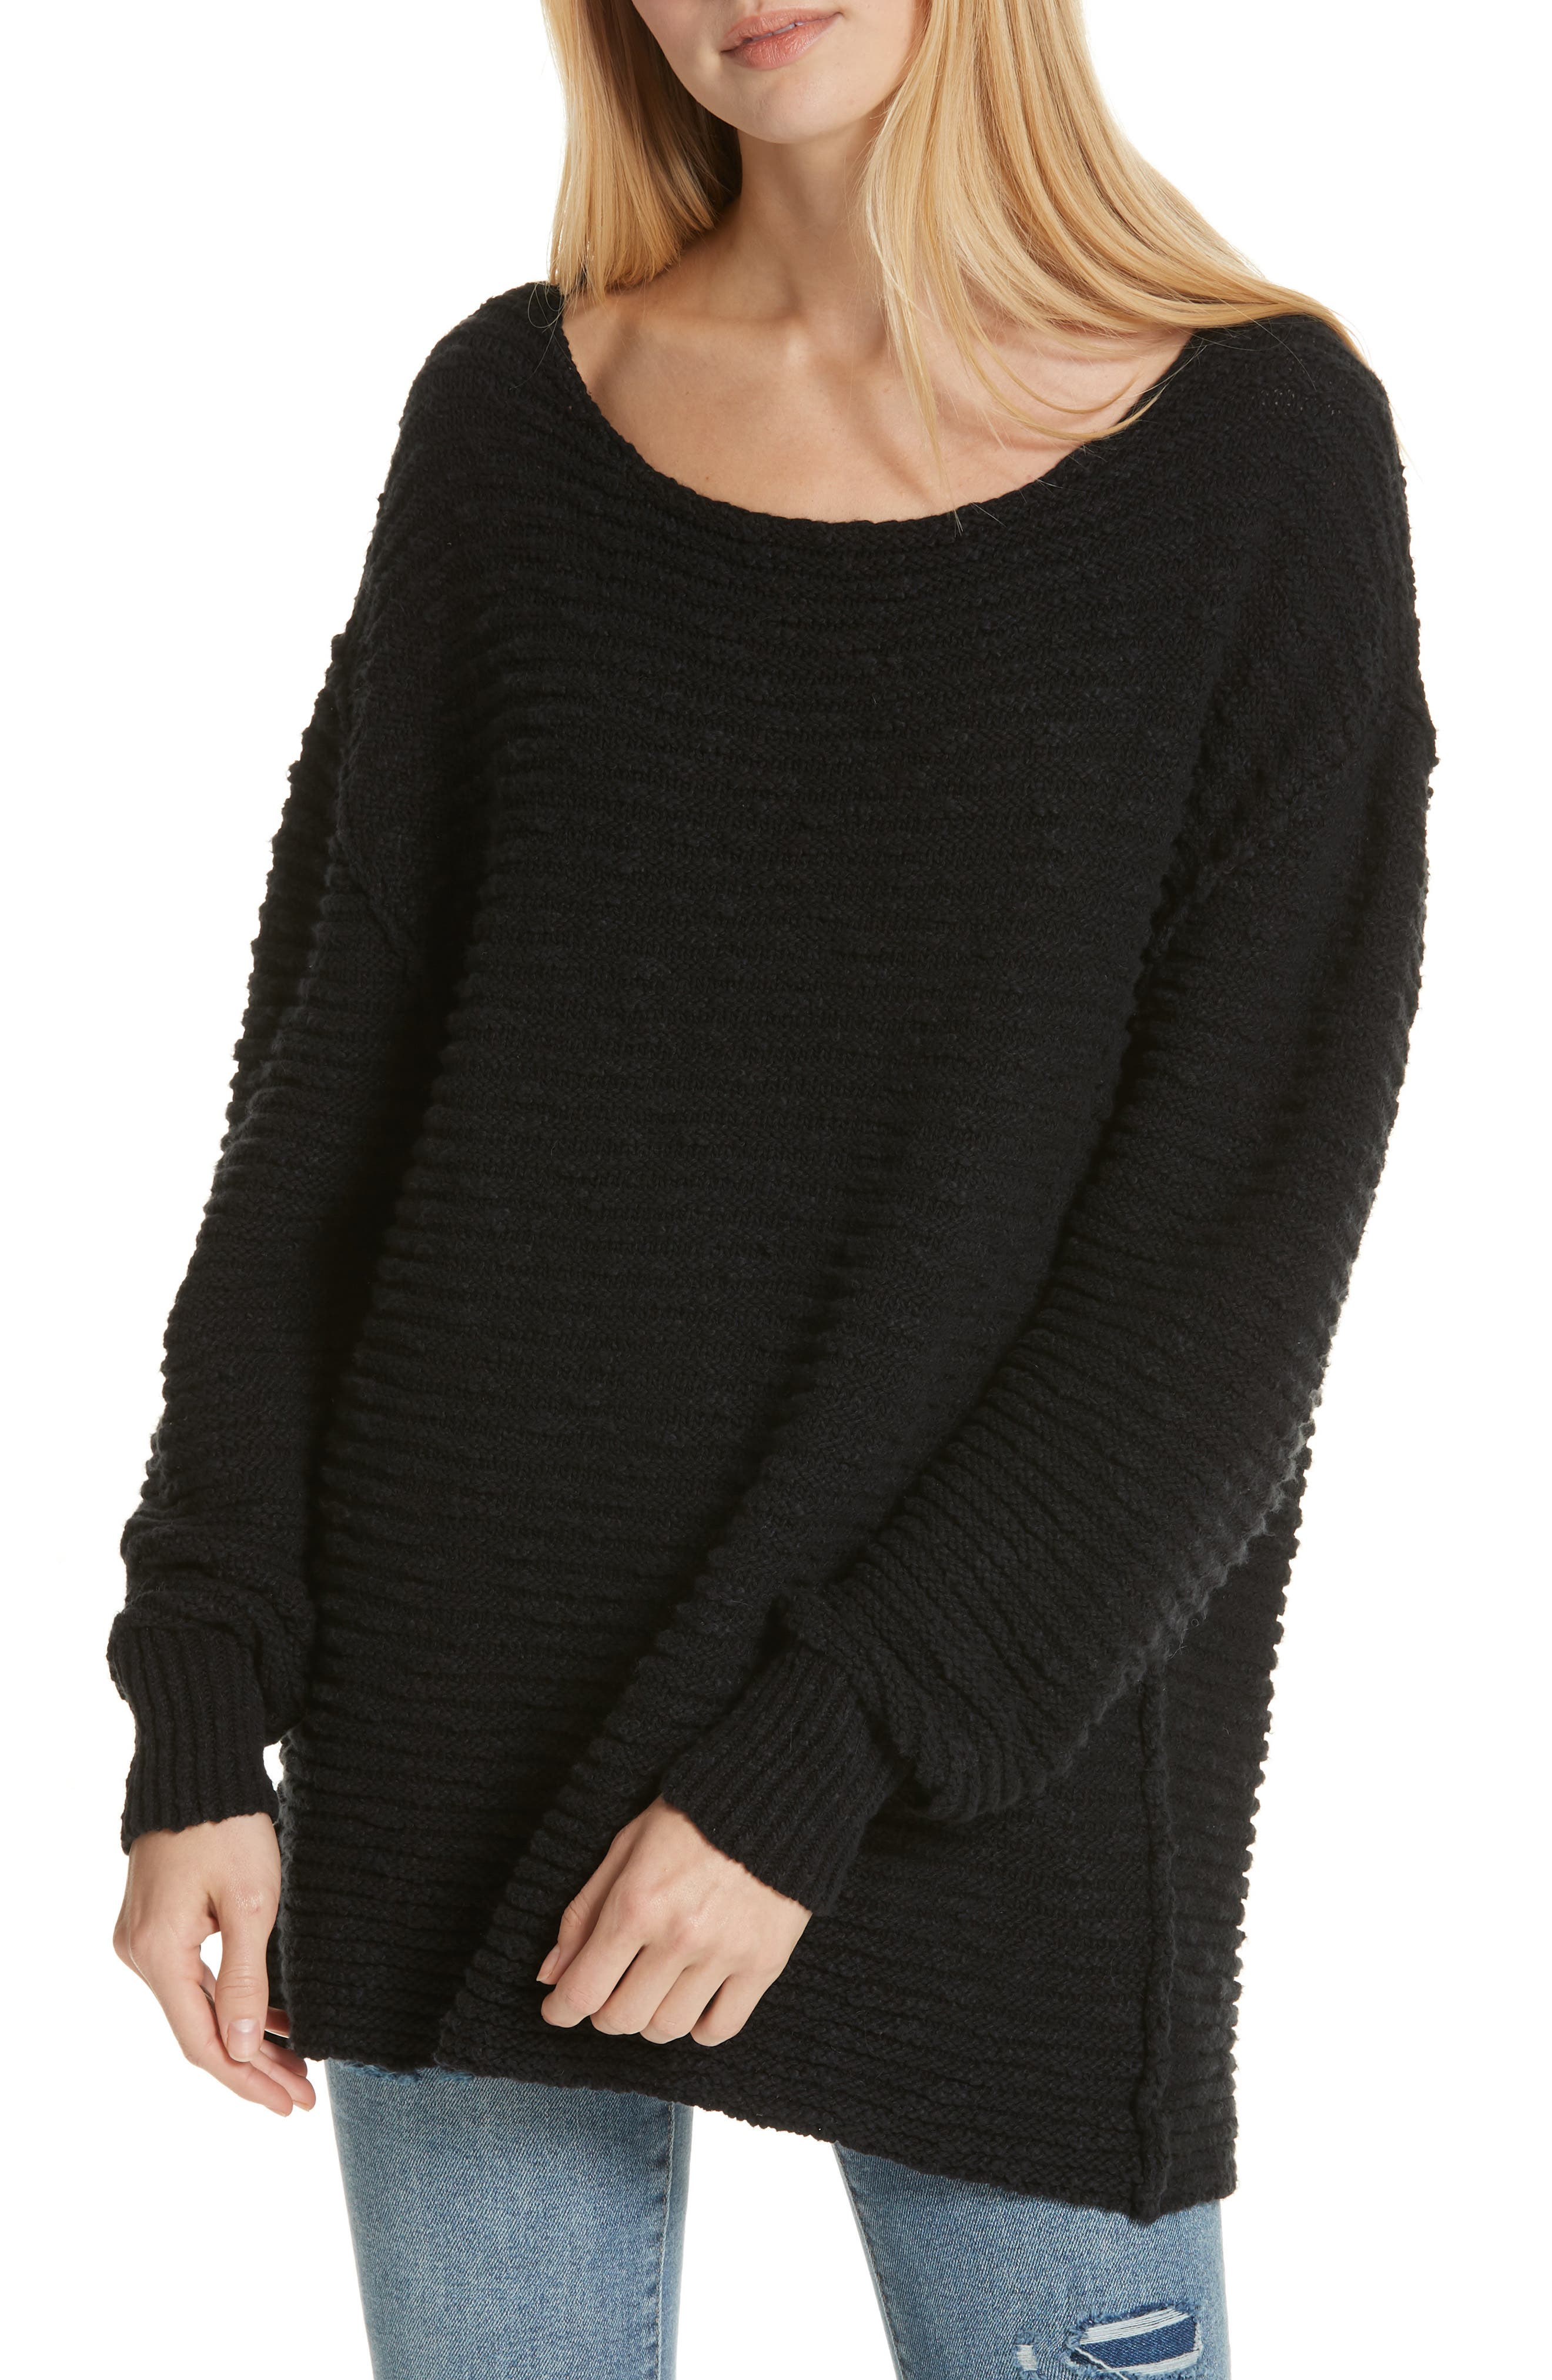 Menace Solid Tunic Sweater,                         Main,                         color, 001